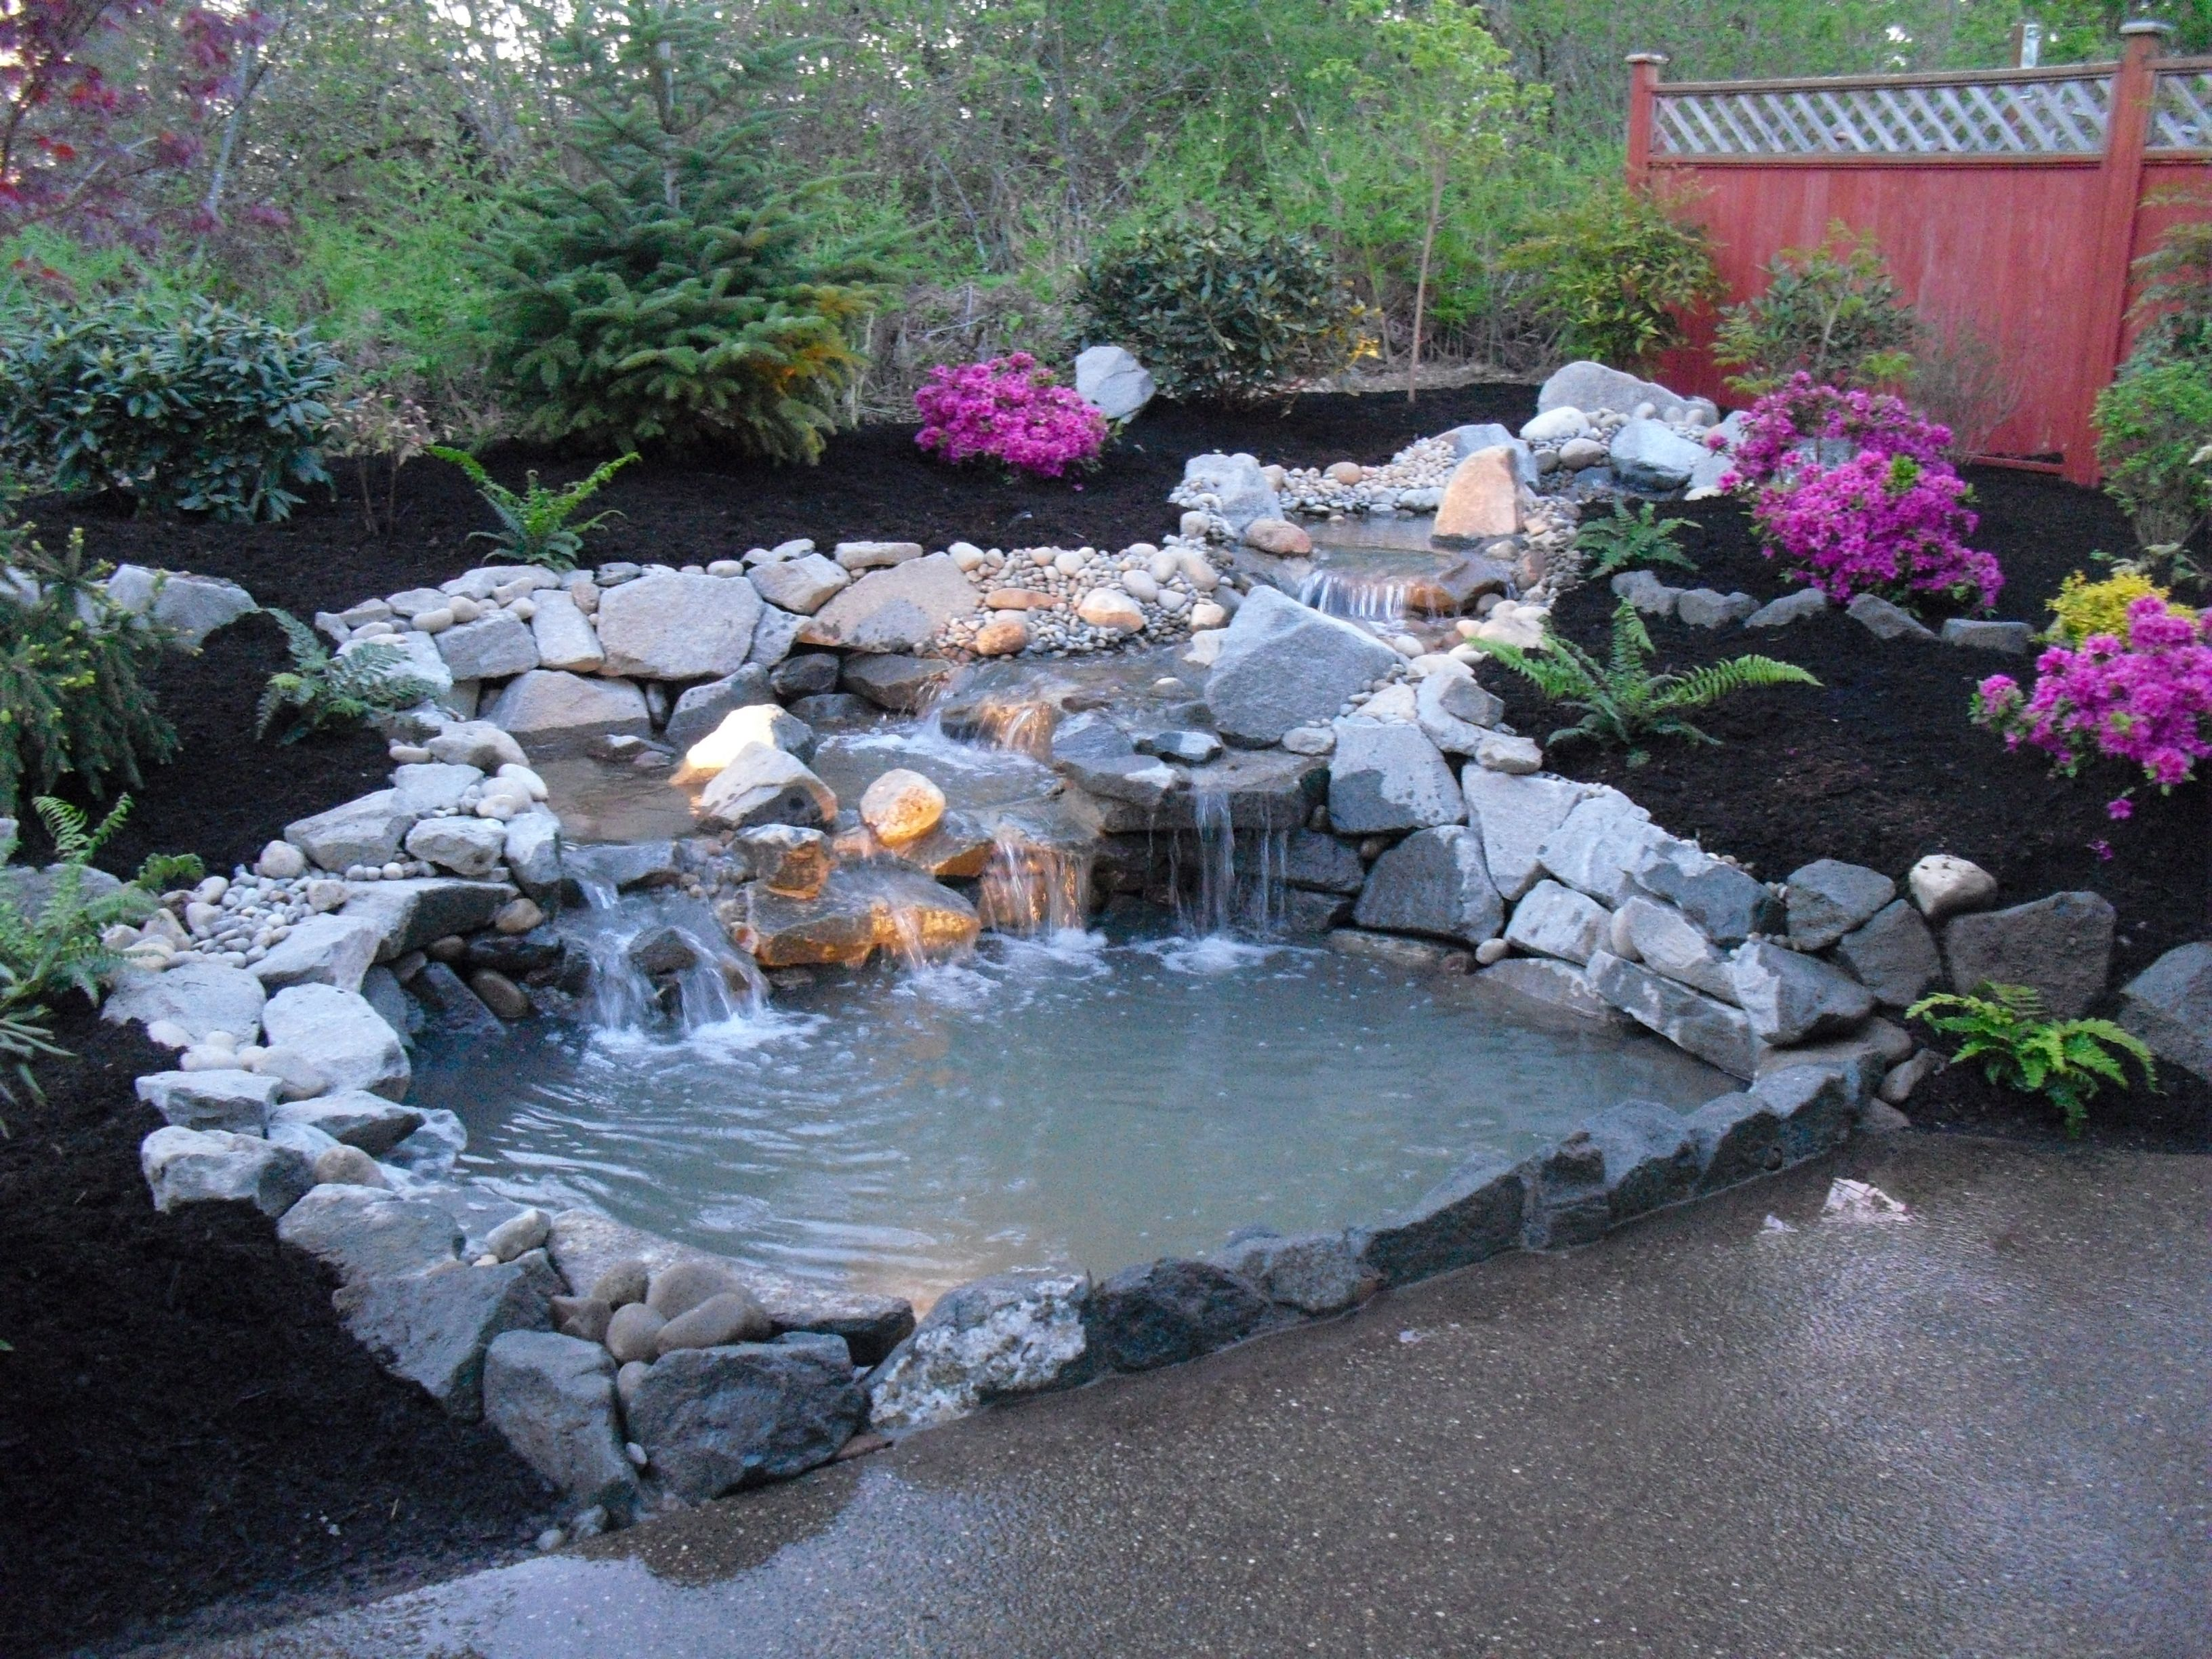 Garden Pond Design With Round Brick Pattern Tiles And Large Statue